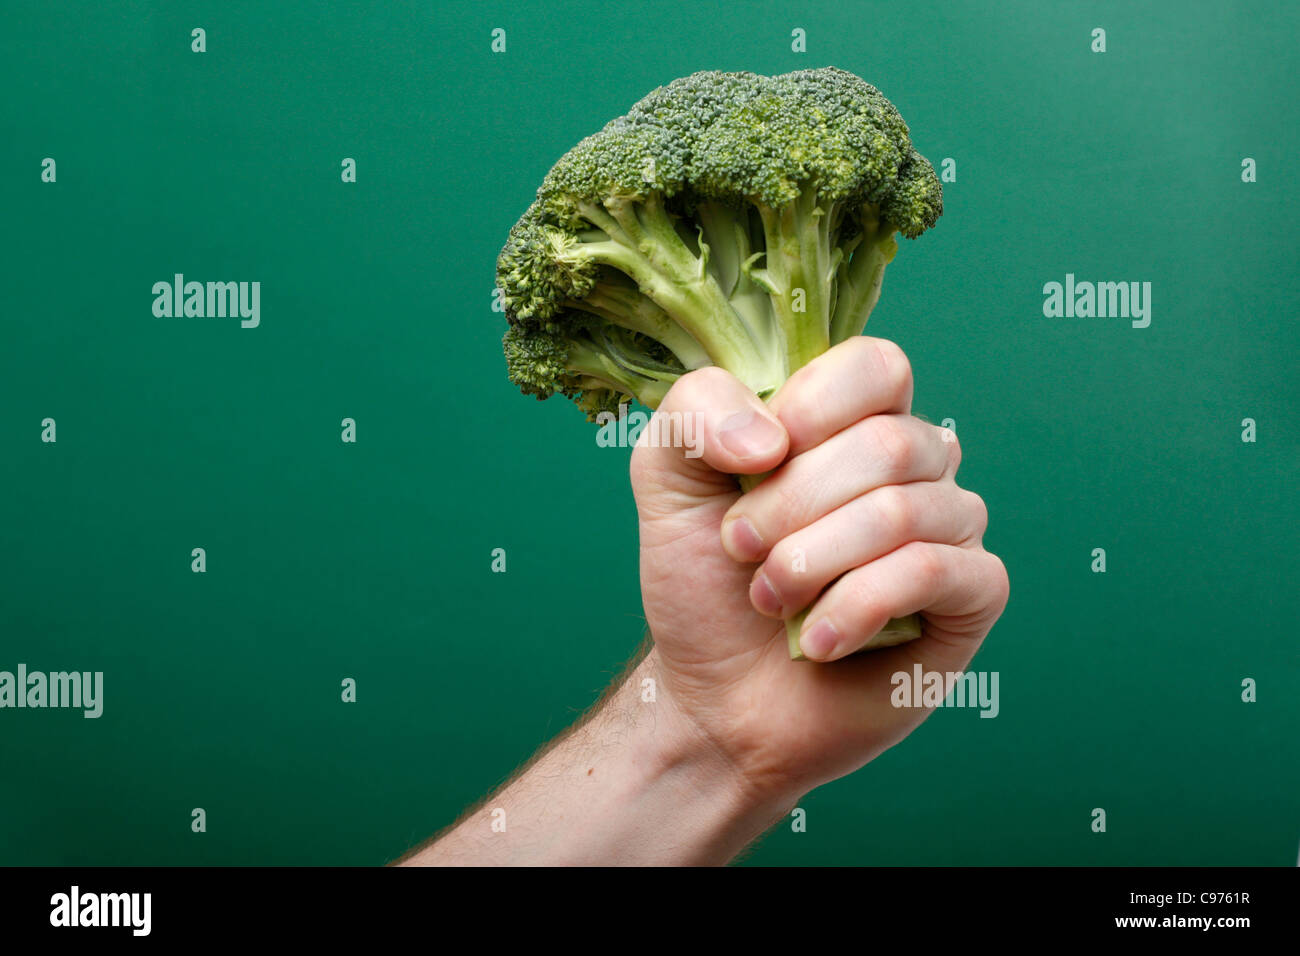 A hand holding broccoli - Stock Image